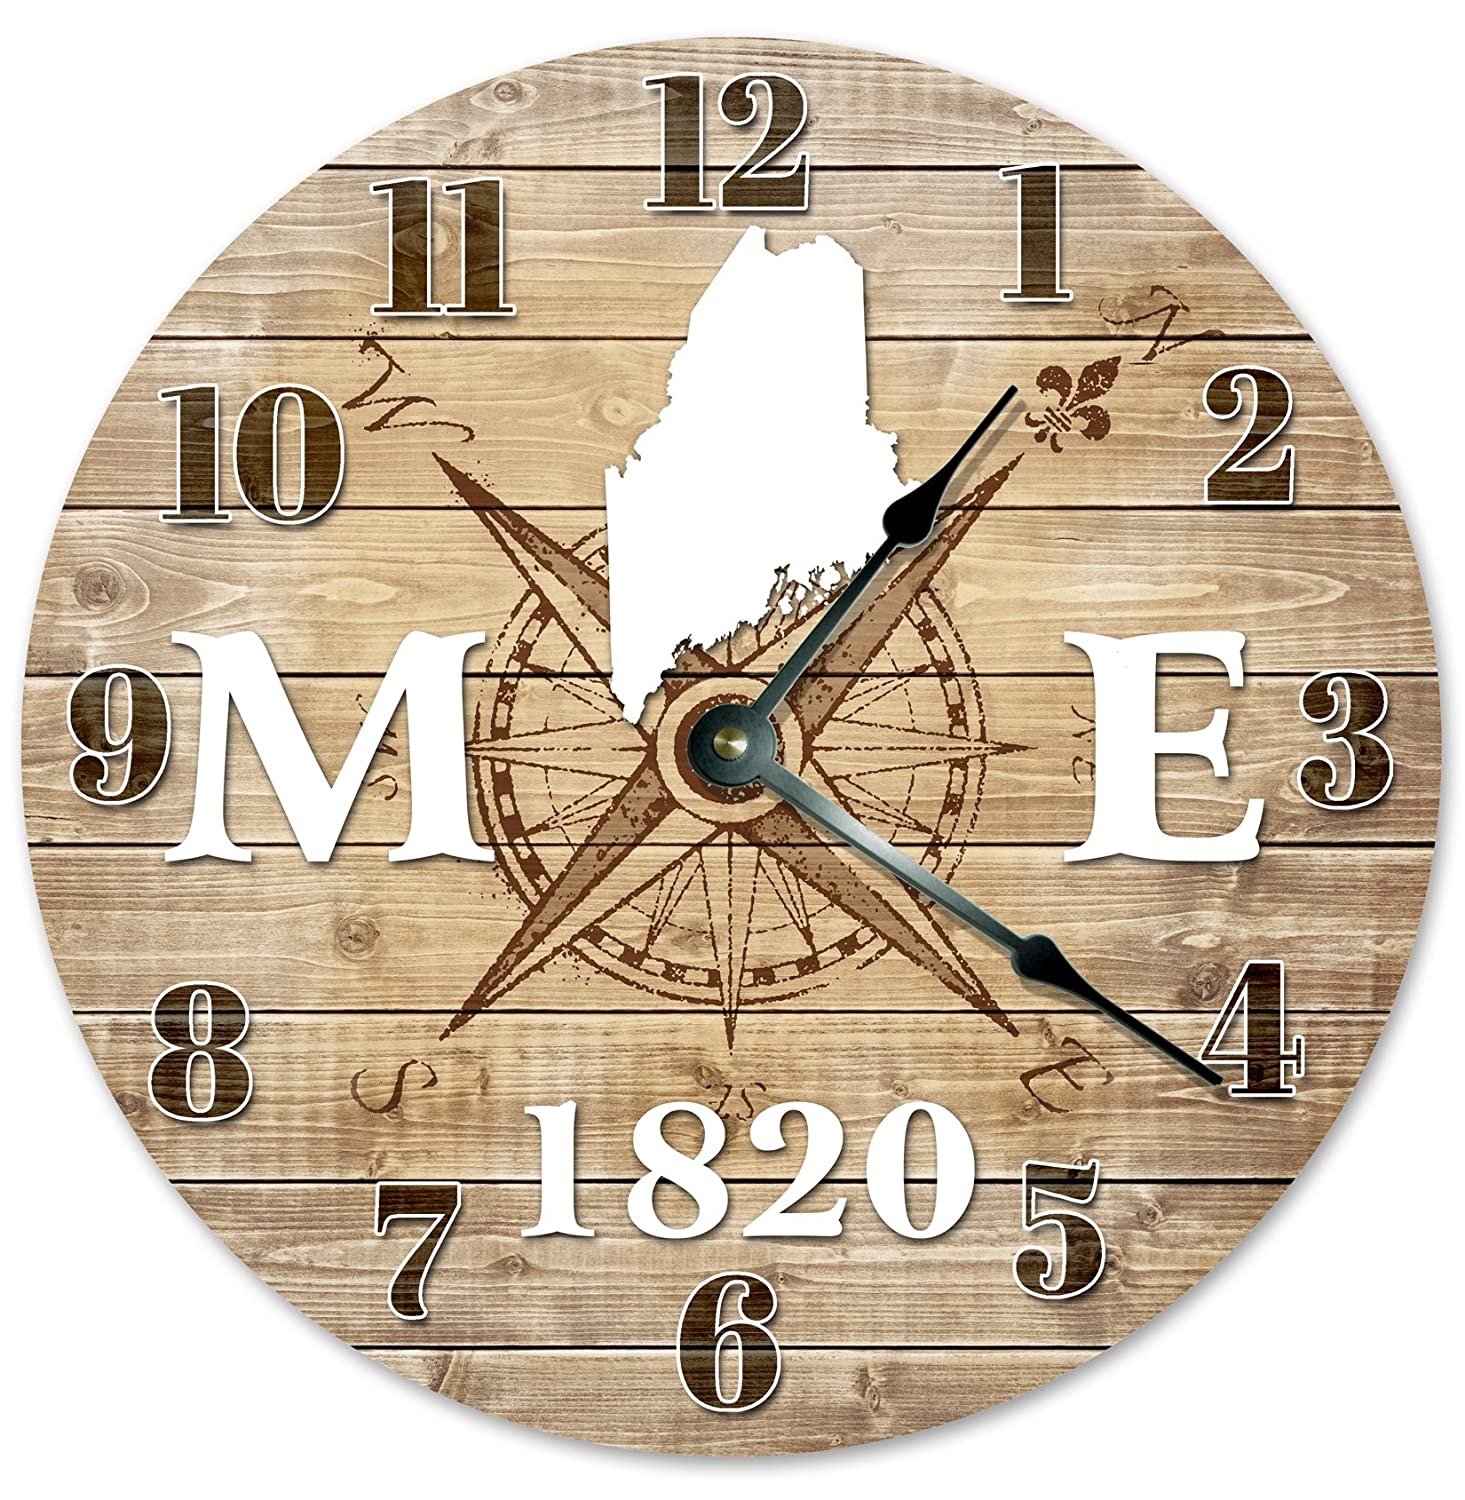 "MAINE CLOCK Established in 1820 Decorative Round Wall Clock Home Decor Large 10.5"" COMPASS MAP RUSTIC STATE CLOCK Printed Wood Image"